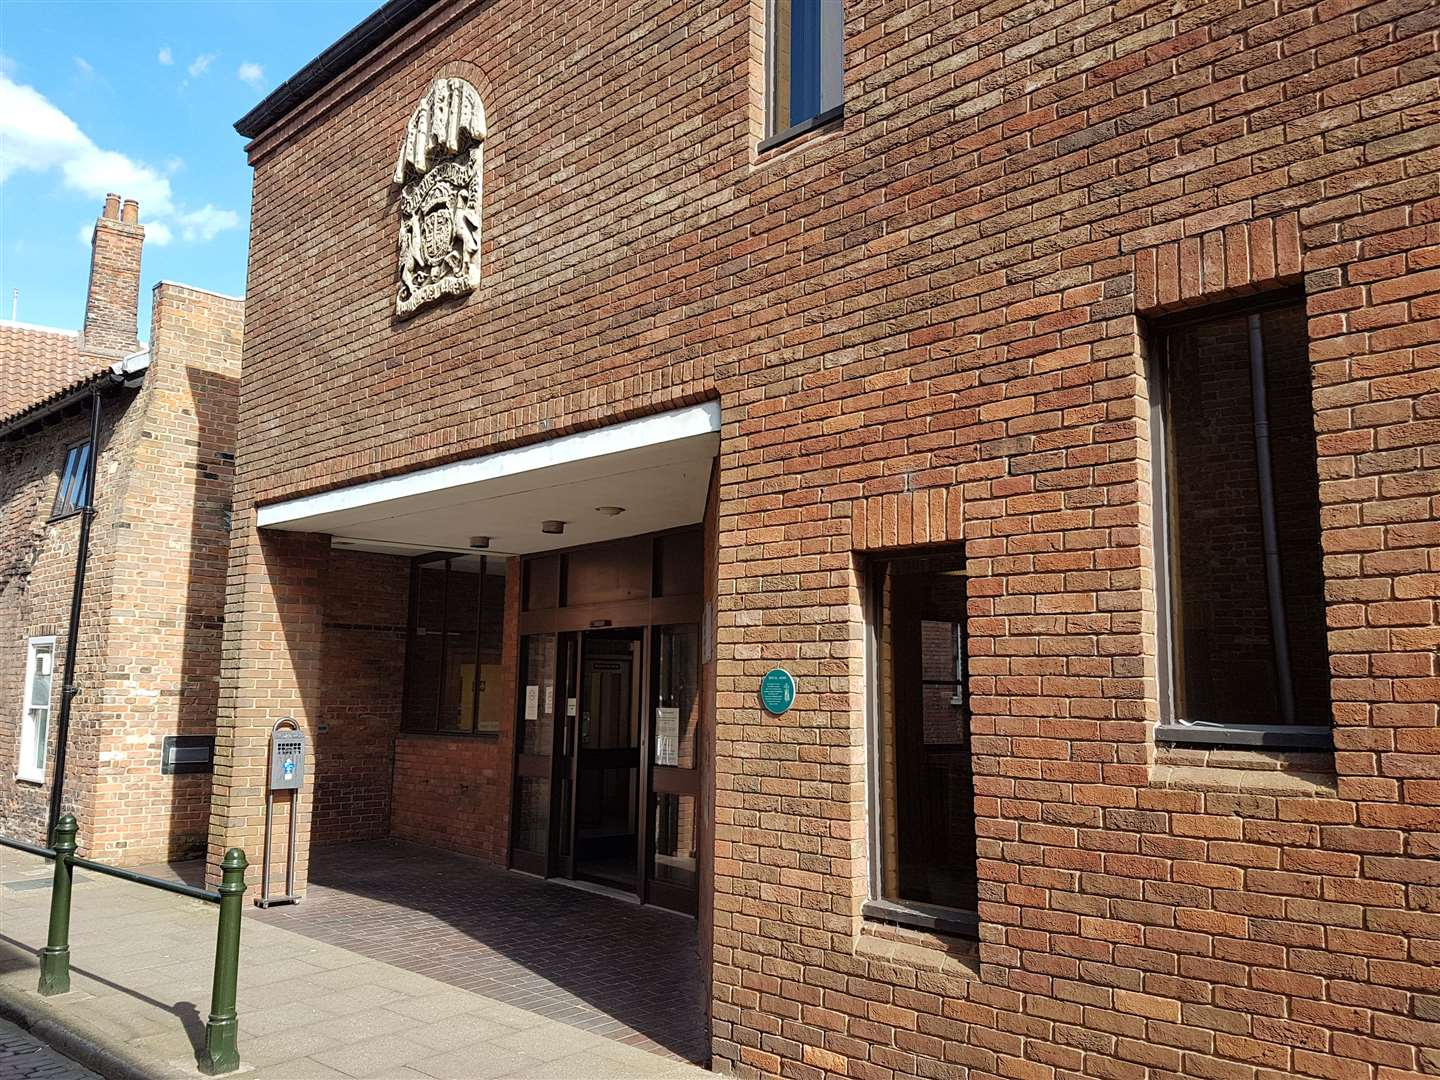 King's Lynn Magistrates' Court